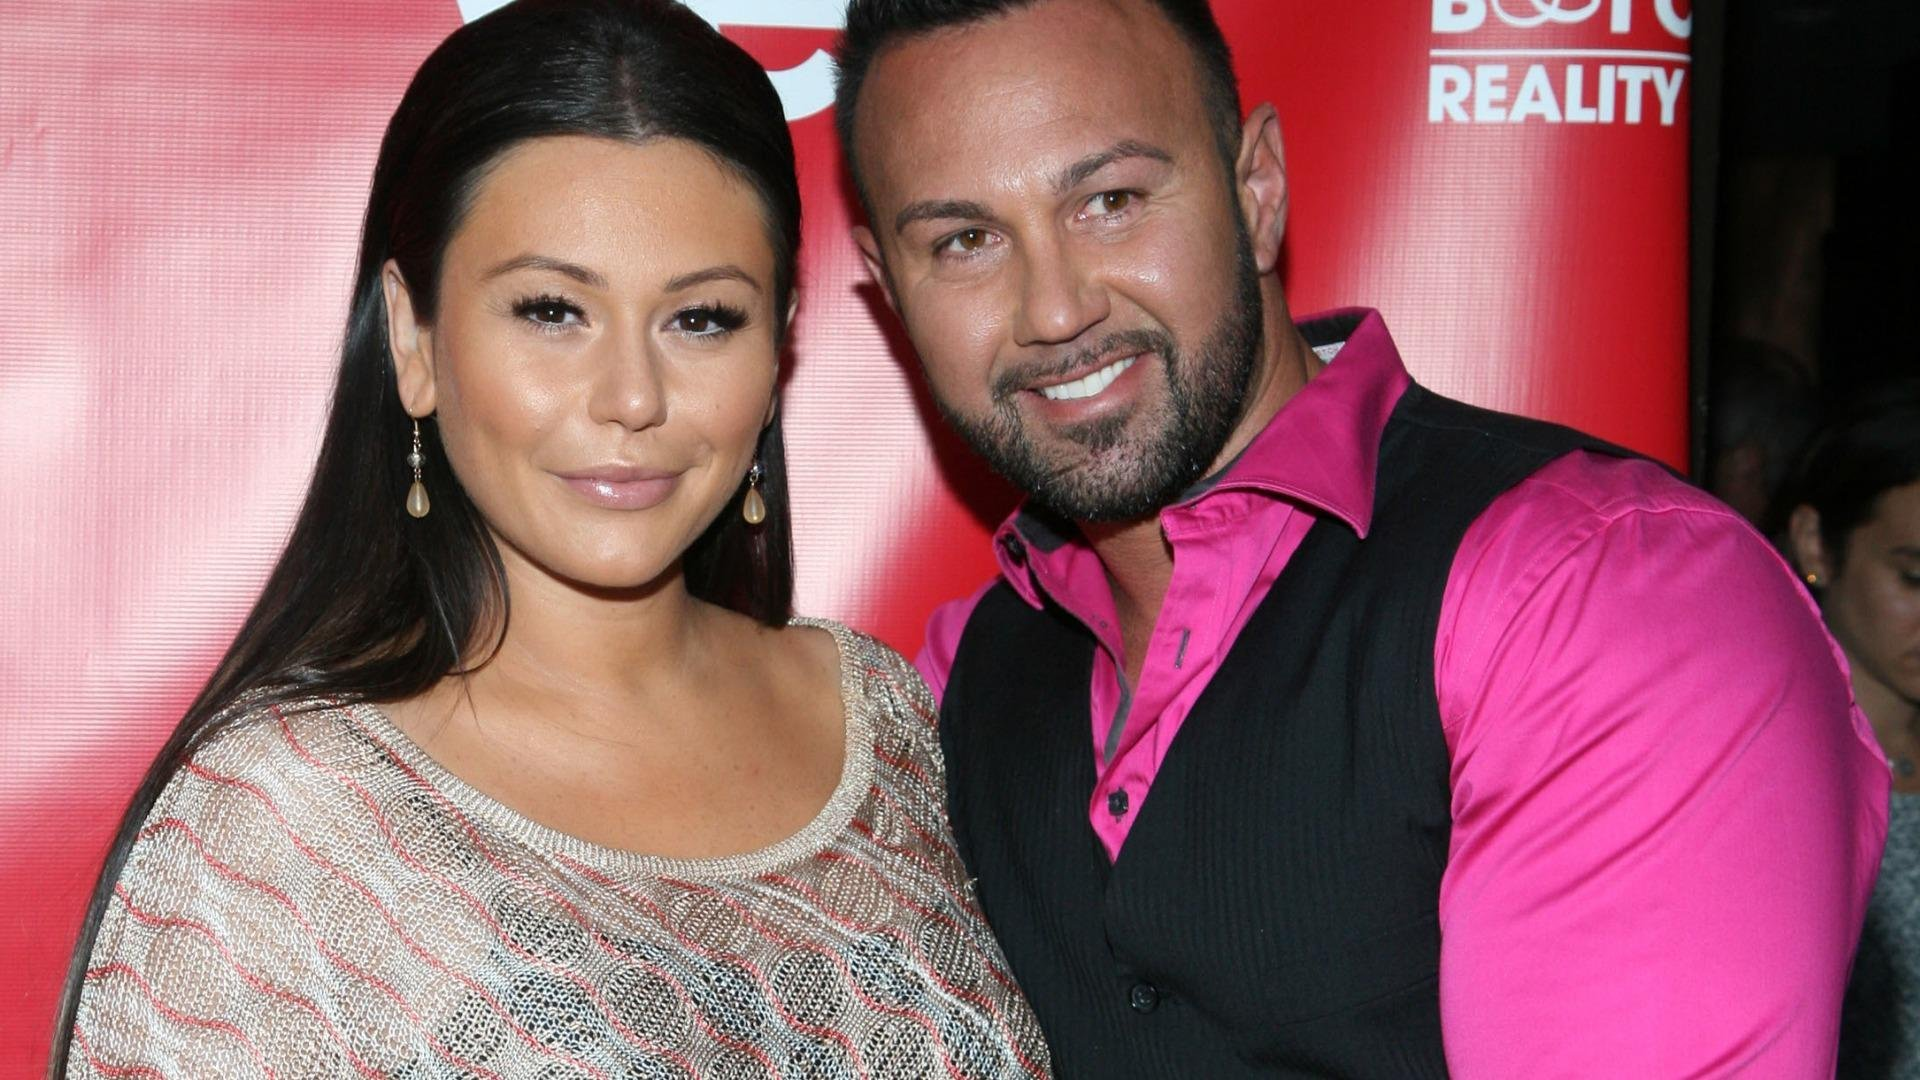 Here comes a mini-me for JWoww: star gives birth to her daughter